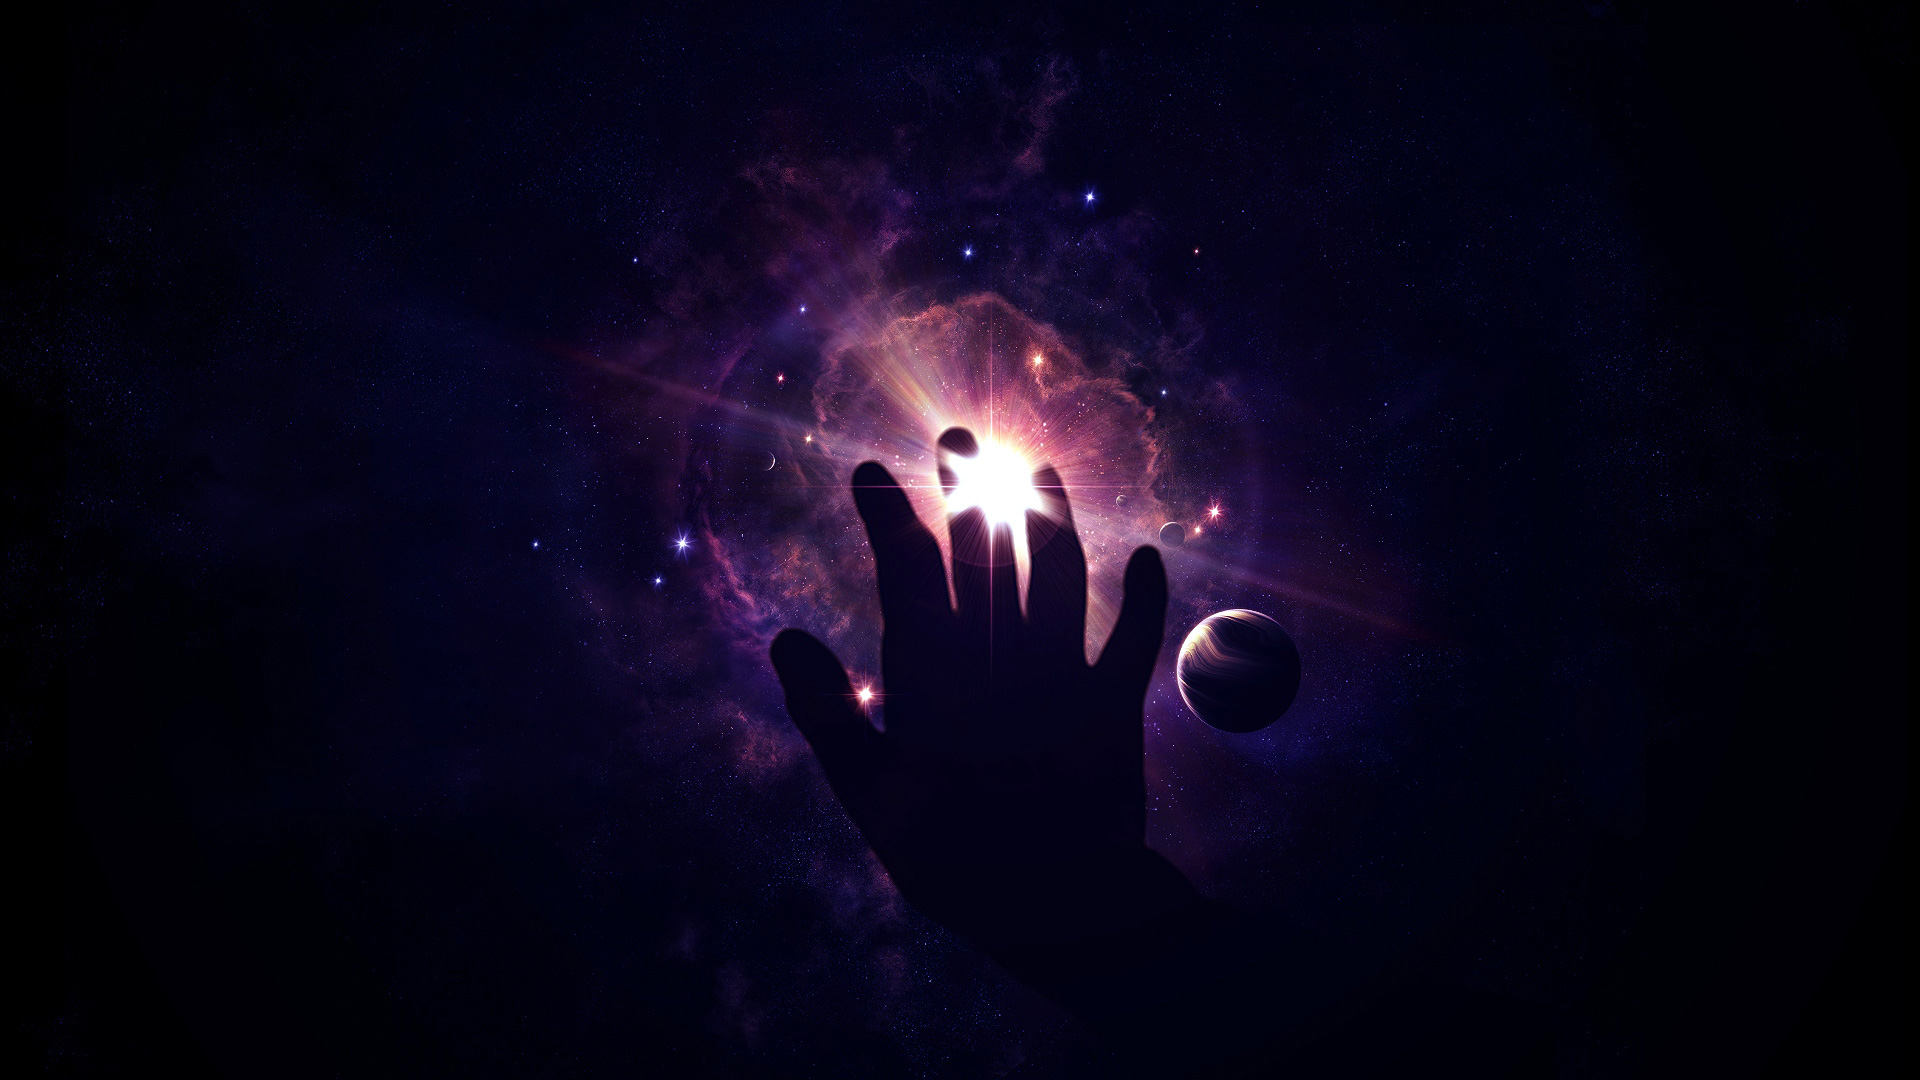 Can You Touch The Galaxy Hd Wallpaper Background Image 1920x1080